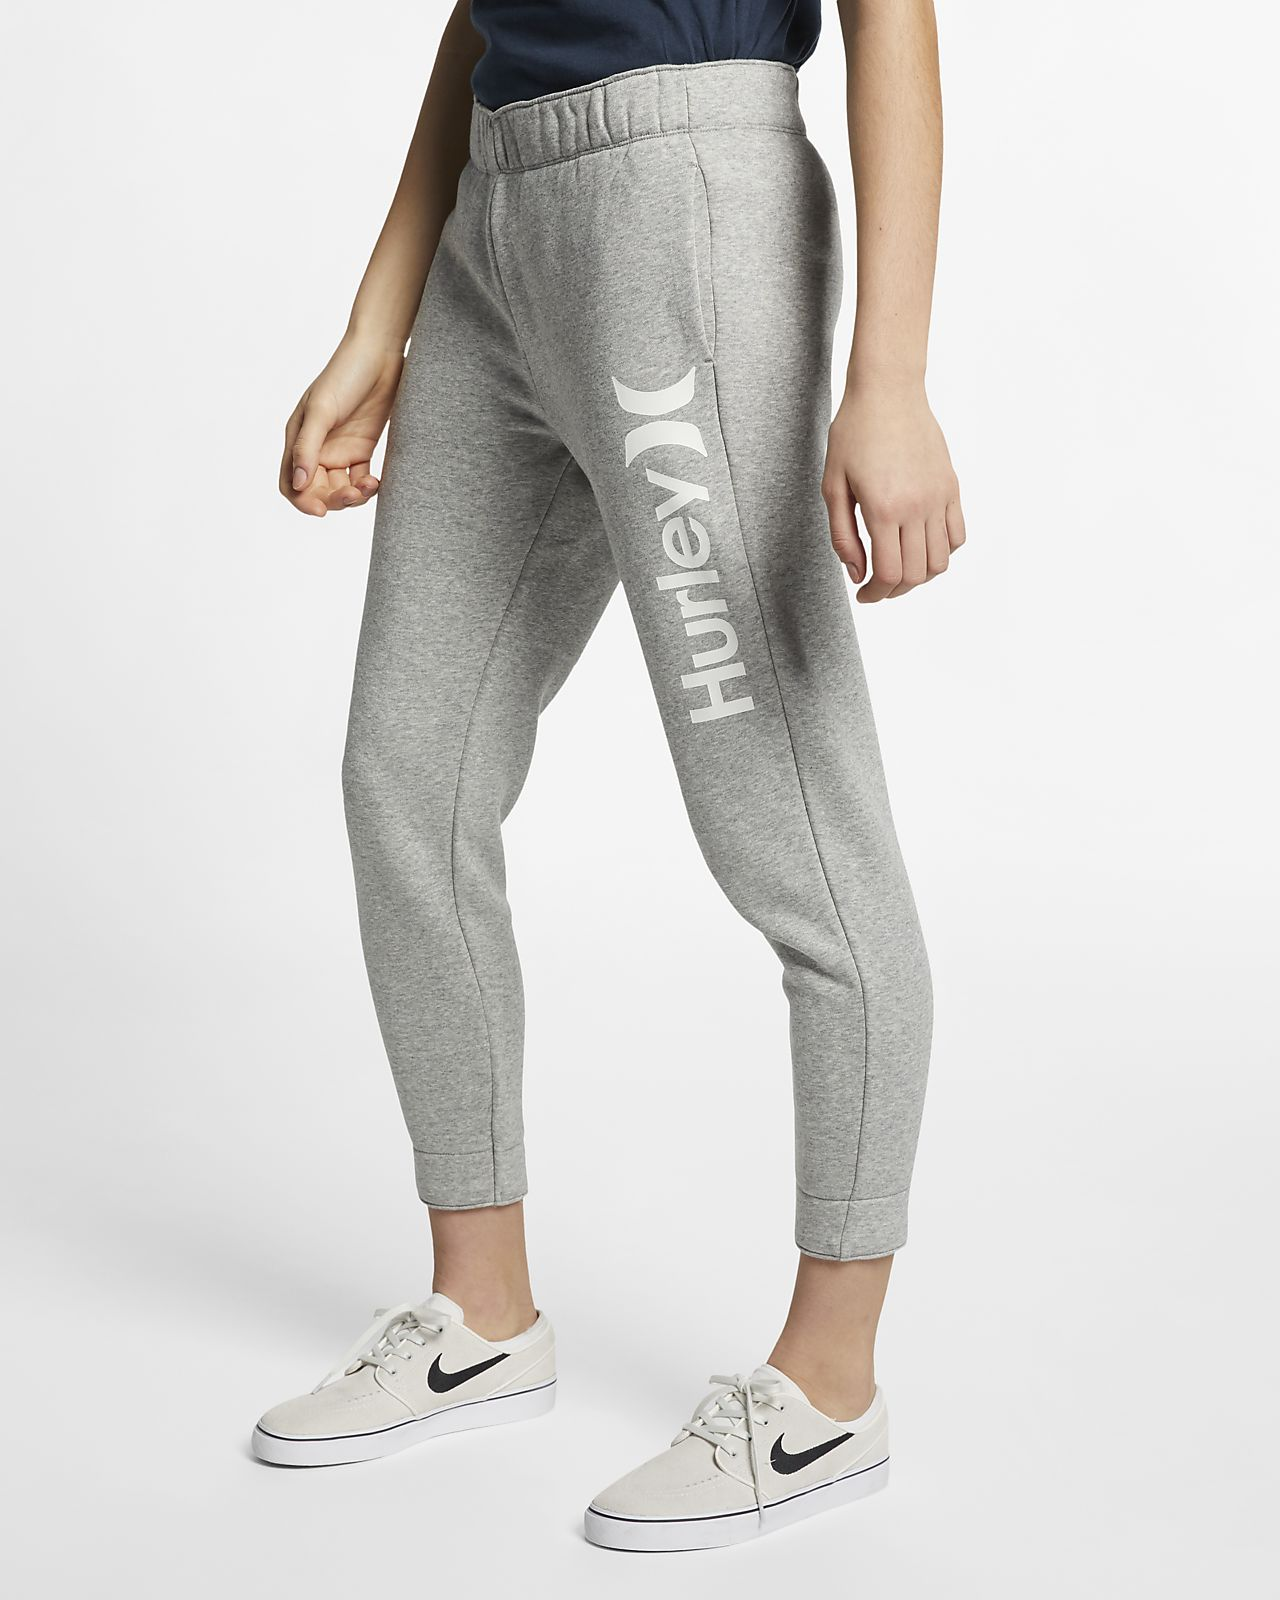 cheap for discount aa5b7 62882 Hurley One And Only Fleece Women's Joggers. Nike.com